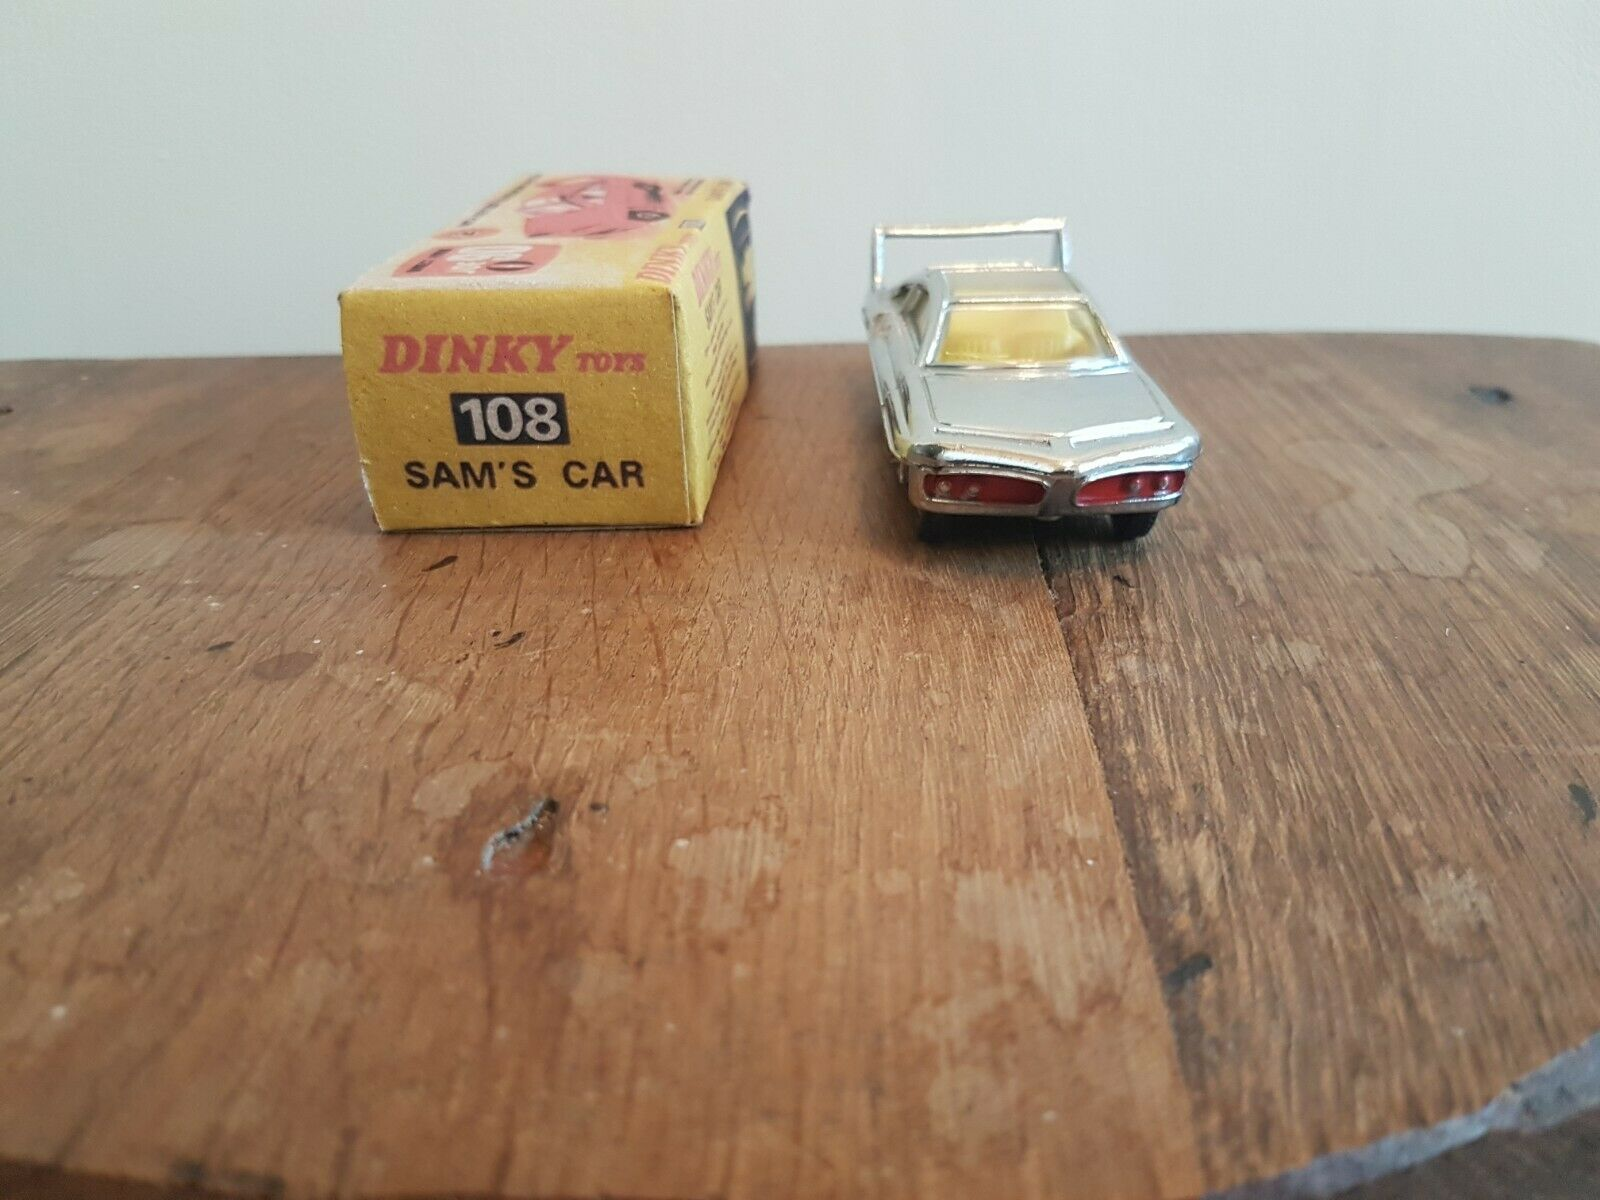 Rare Dinky Sam's Car 108 from the Joe 90 TV Series